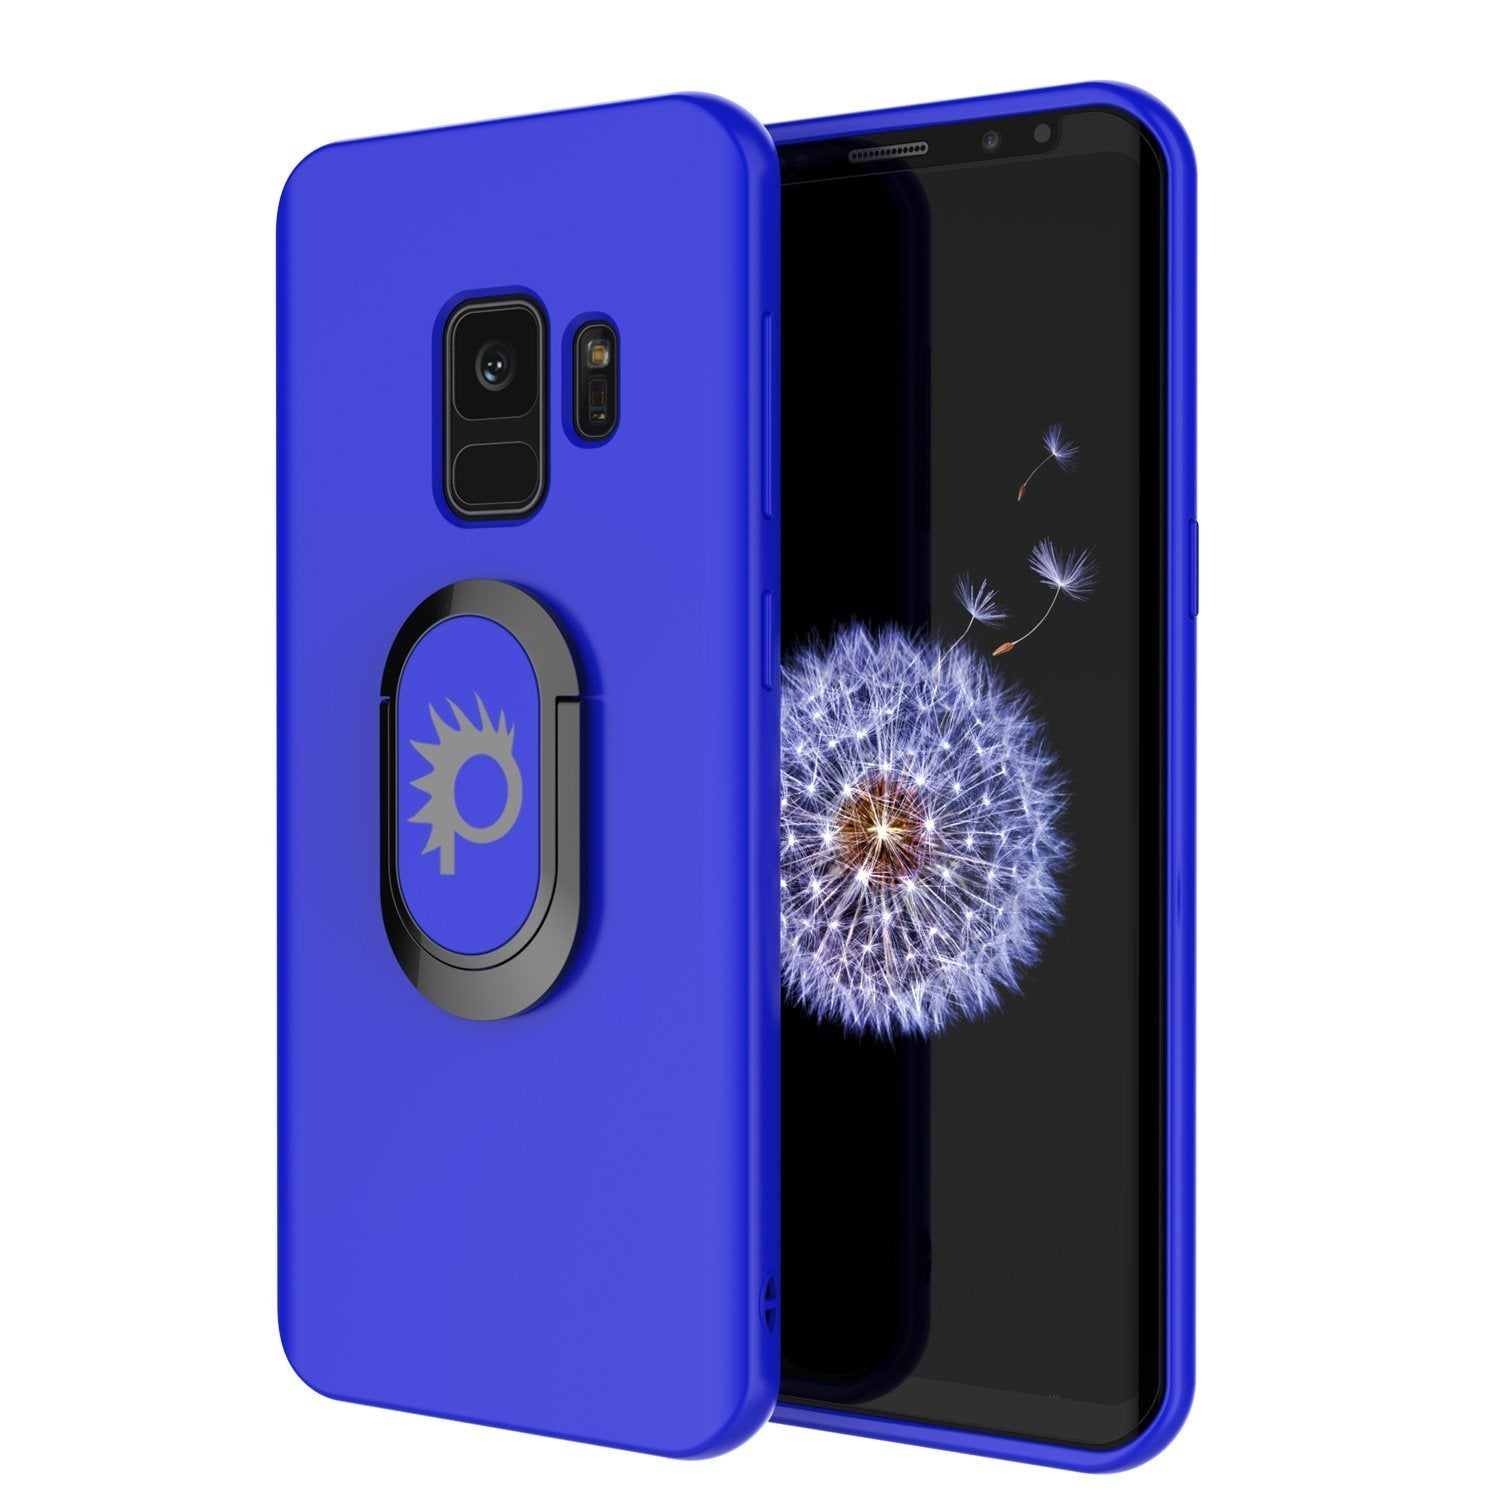 Galaxy S9 Case, Punkcase Magnetix Protective TPU Cover W/ Kickstand, Ring Grip Holder & Metal Plate for Magnetic Car Phone Mount PLUS PunkShield Screen Protector for Samsung S9 Edge [Blue]